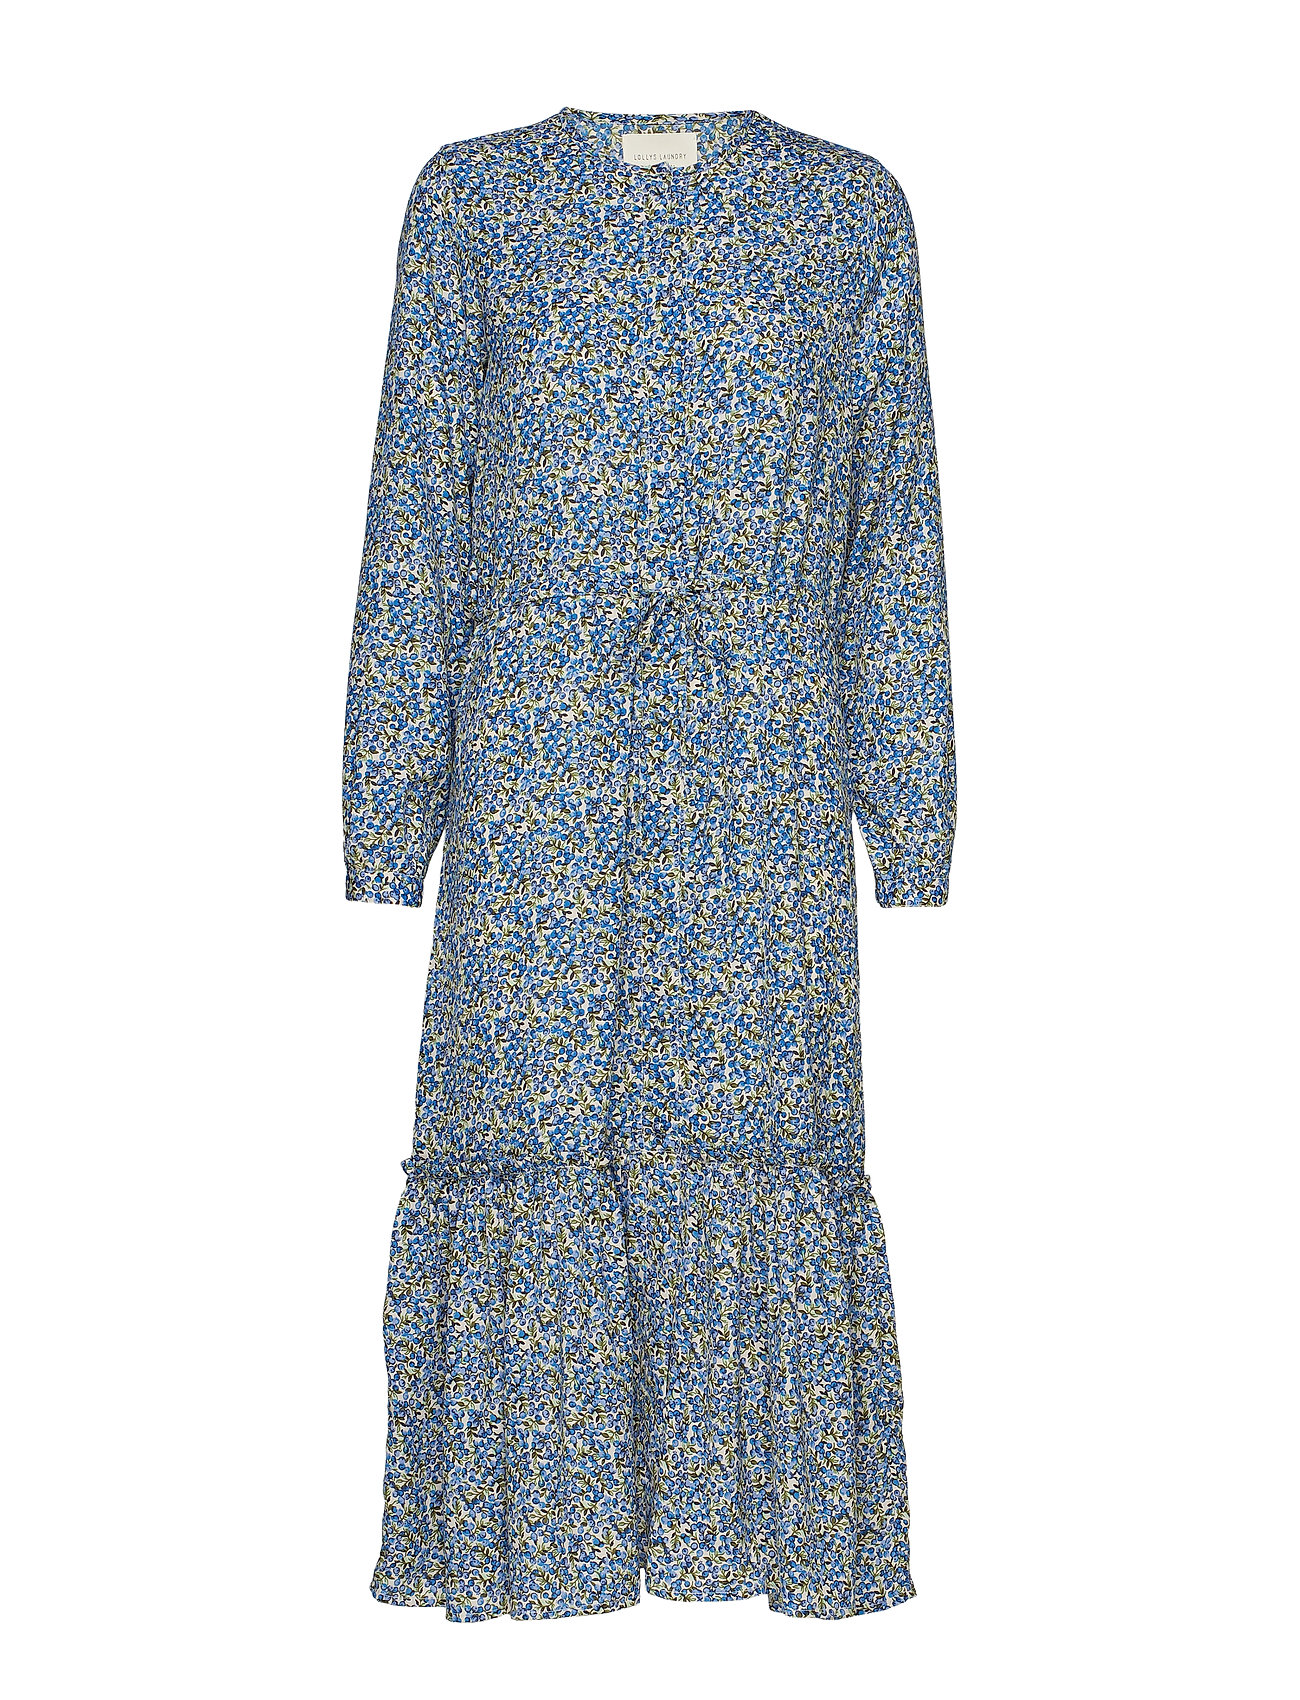 Image of Anastacia Dress Knælang Kjole Blå Lollys Laundry (3192763755)